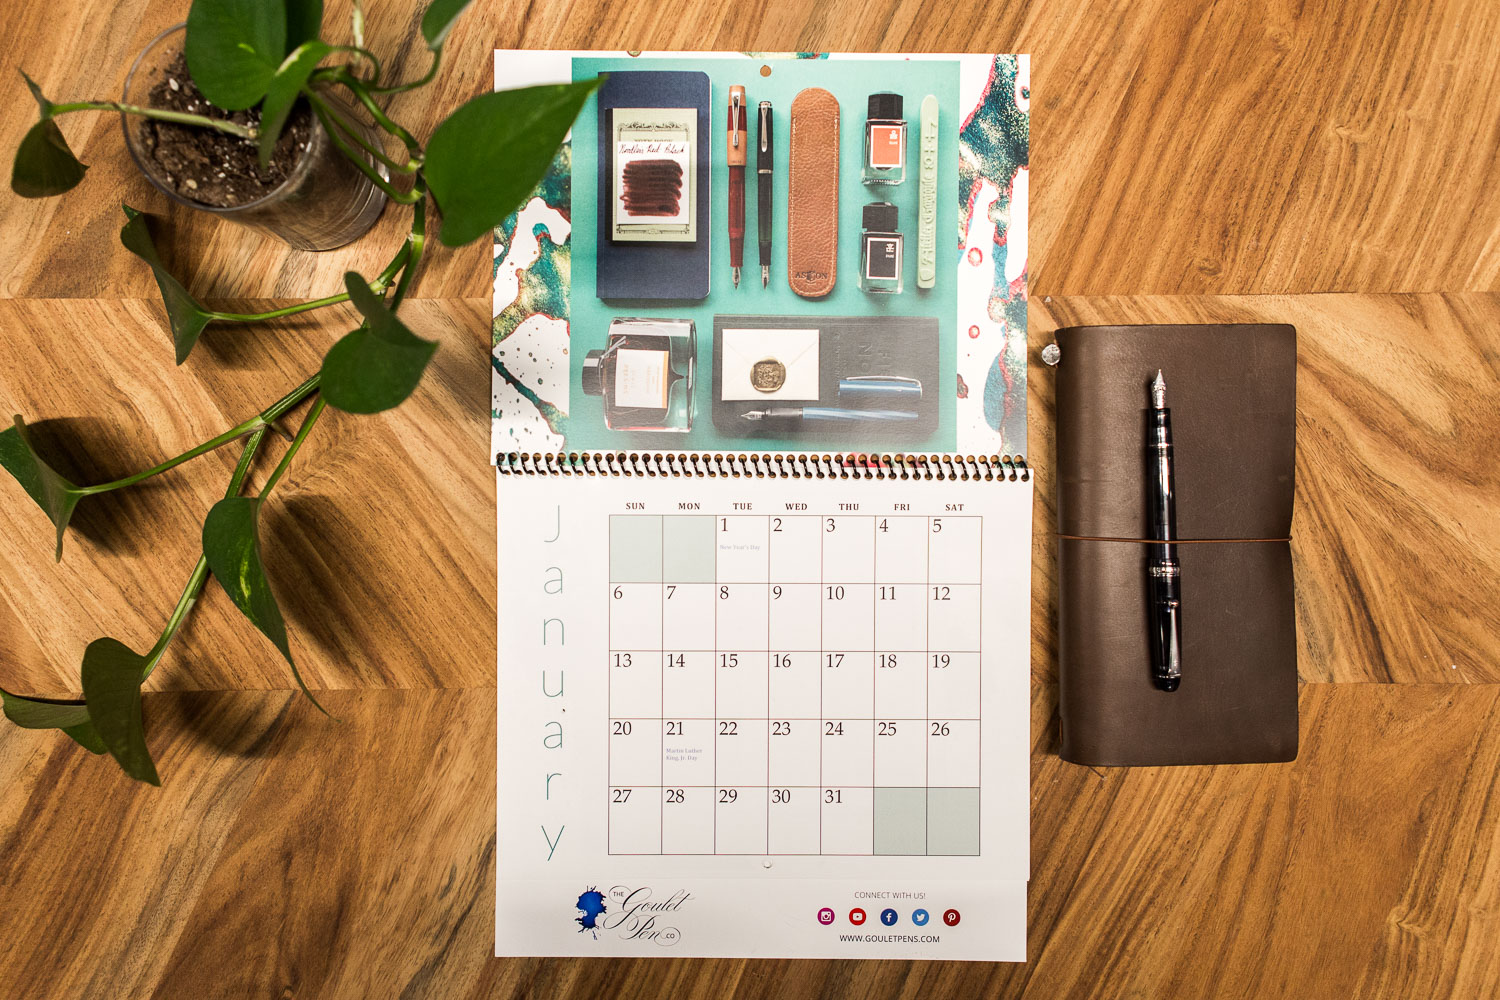 Gpc Calendar 2019 The 2019 Goulet Fountain Pen Calendar is Here! – Goulet Pens Blog